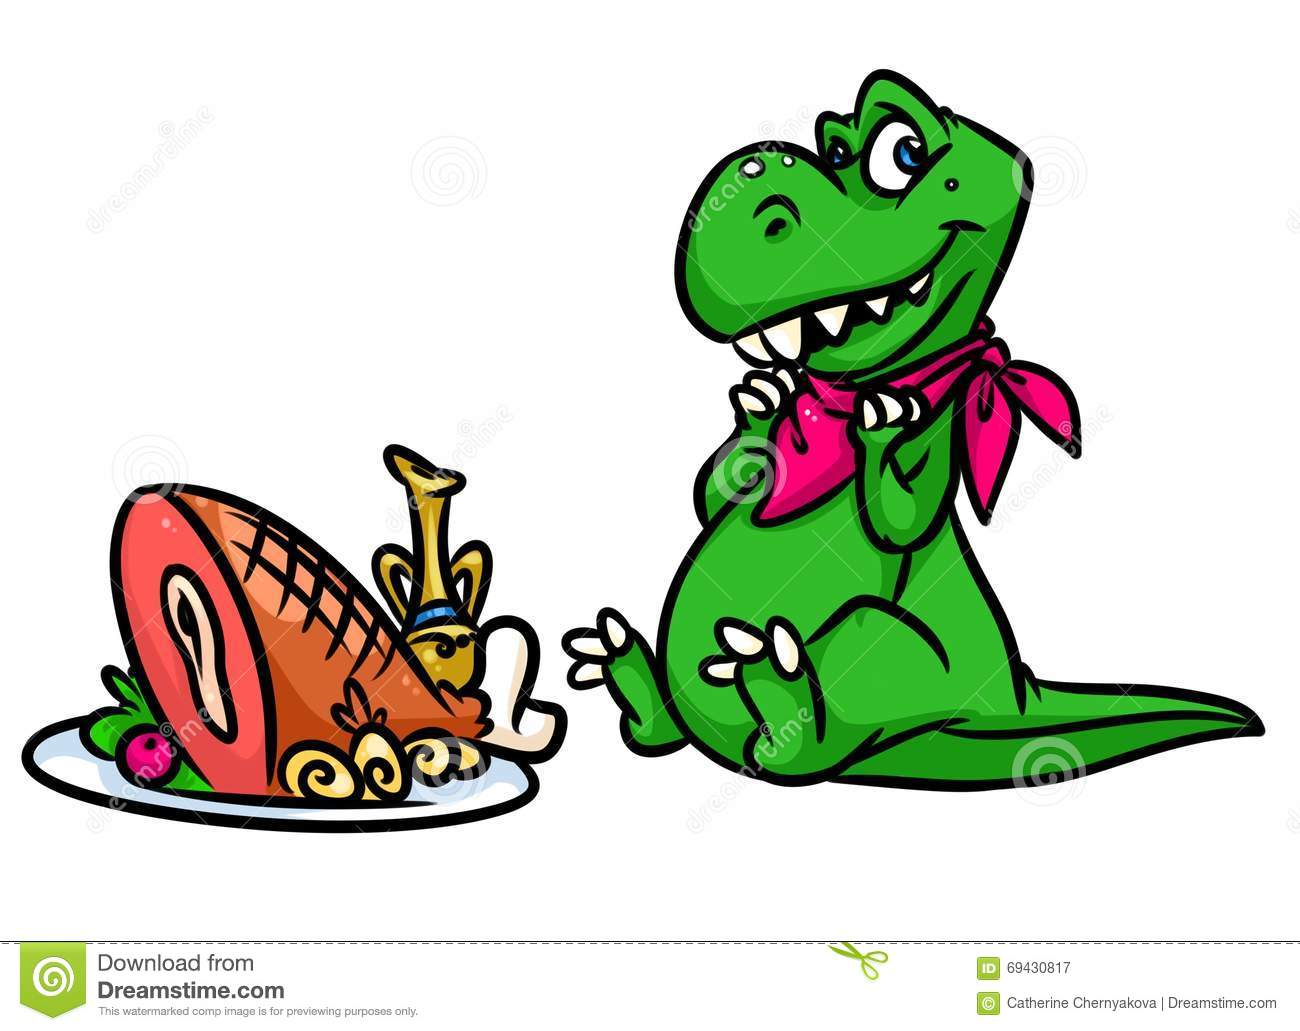 animals eating clipart - photo #20